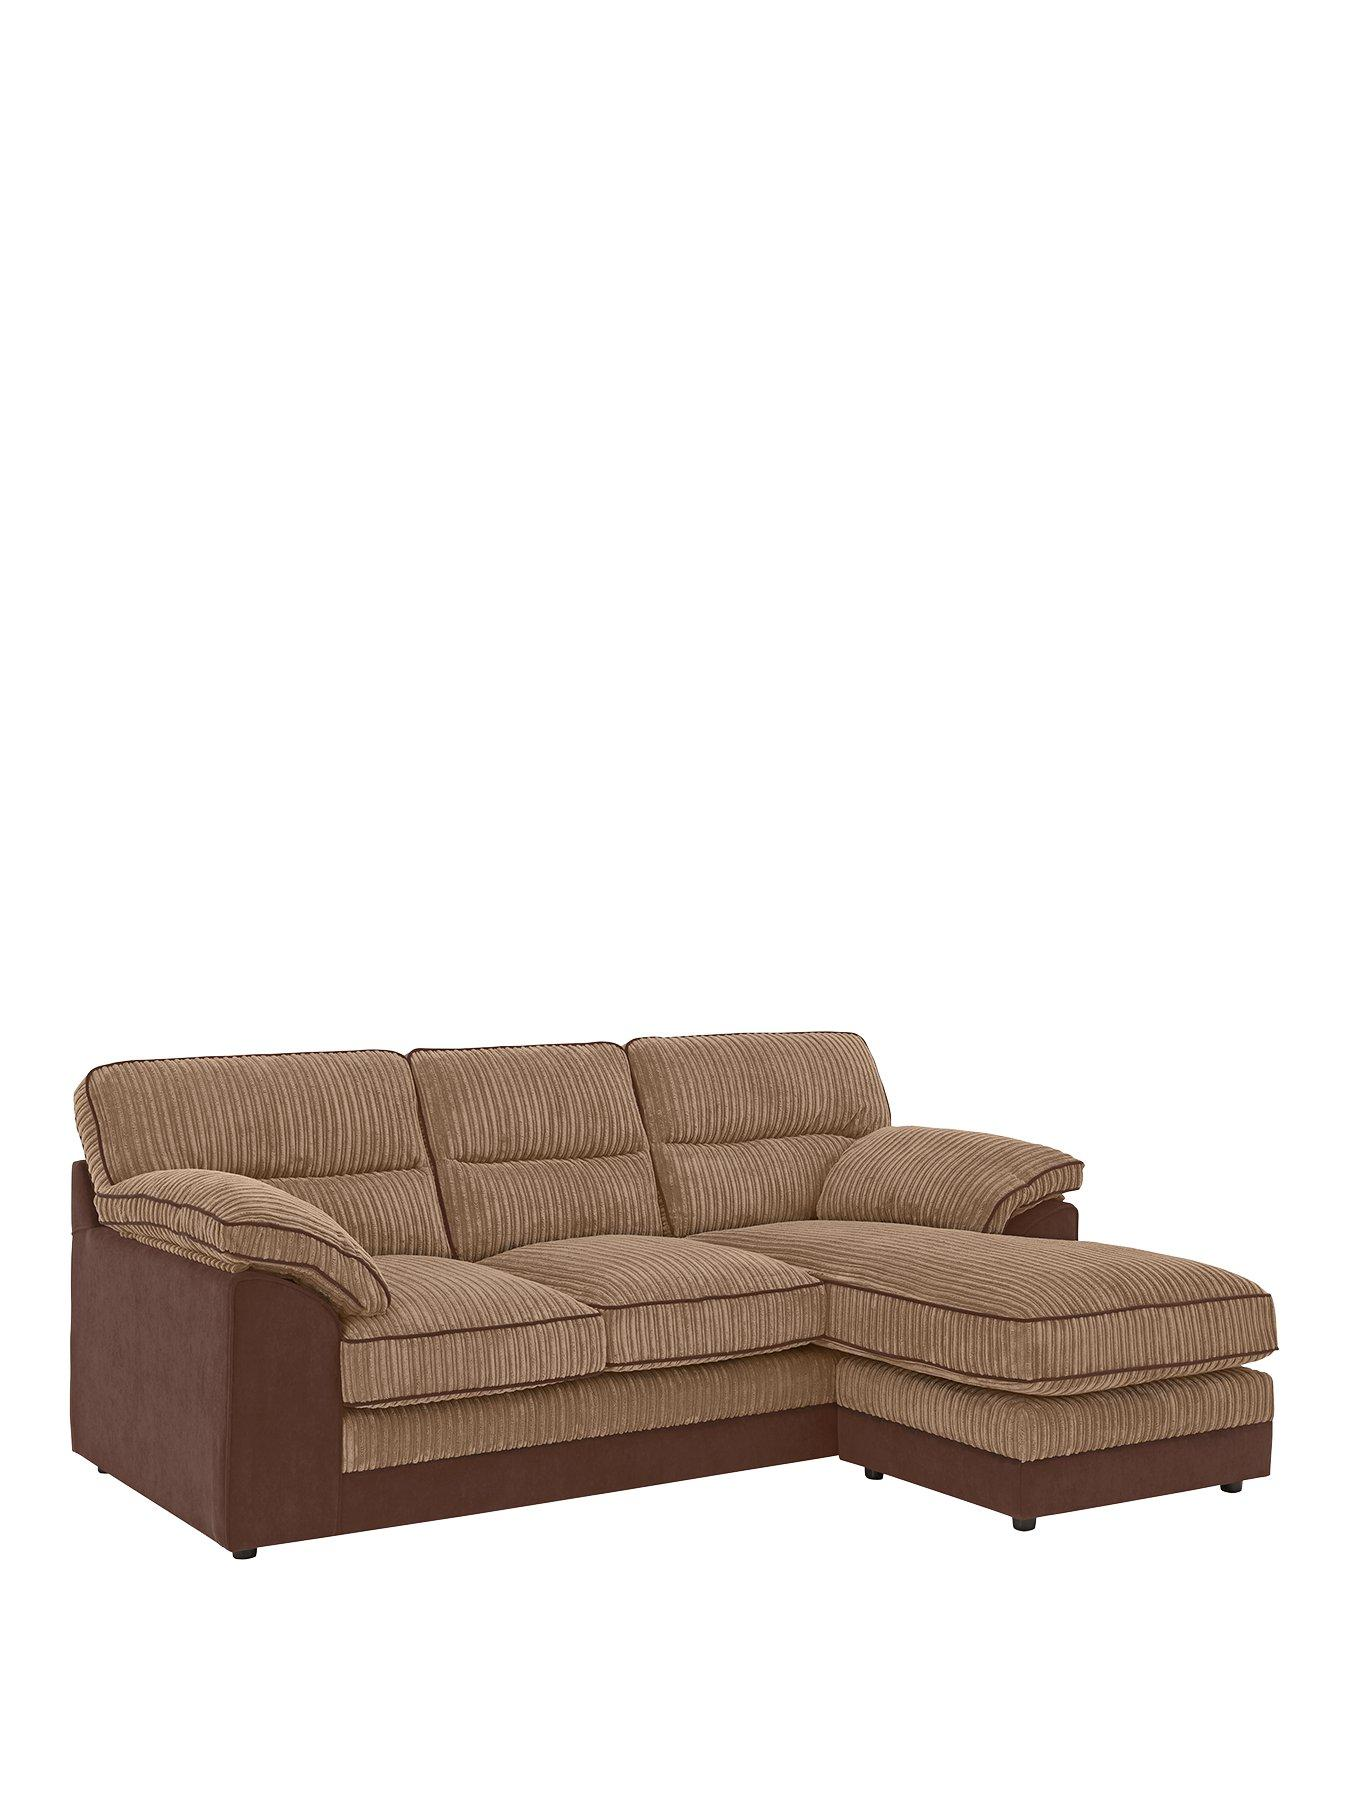 brown fabric sofa small modern bed sofas home garden www very co uk delta 3 seater right hand corner chaise